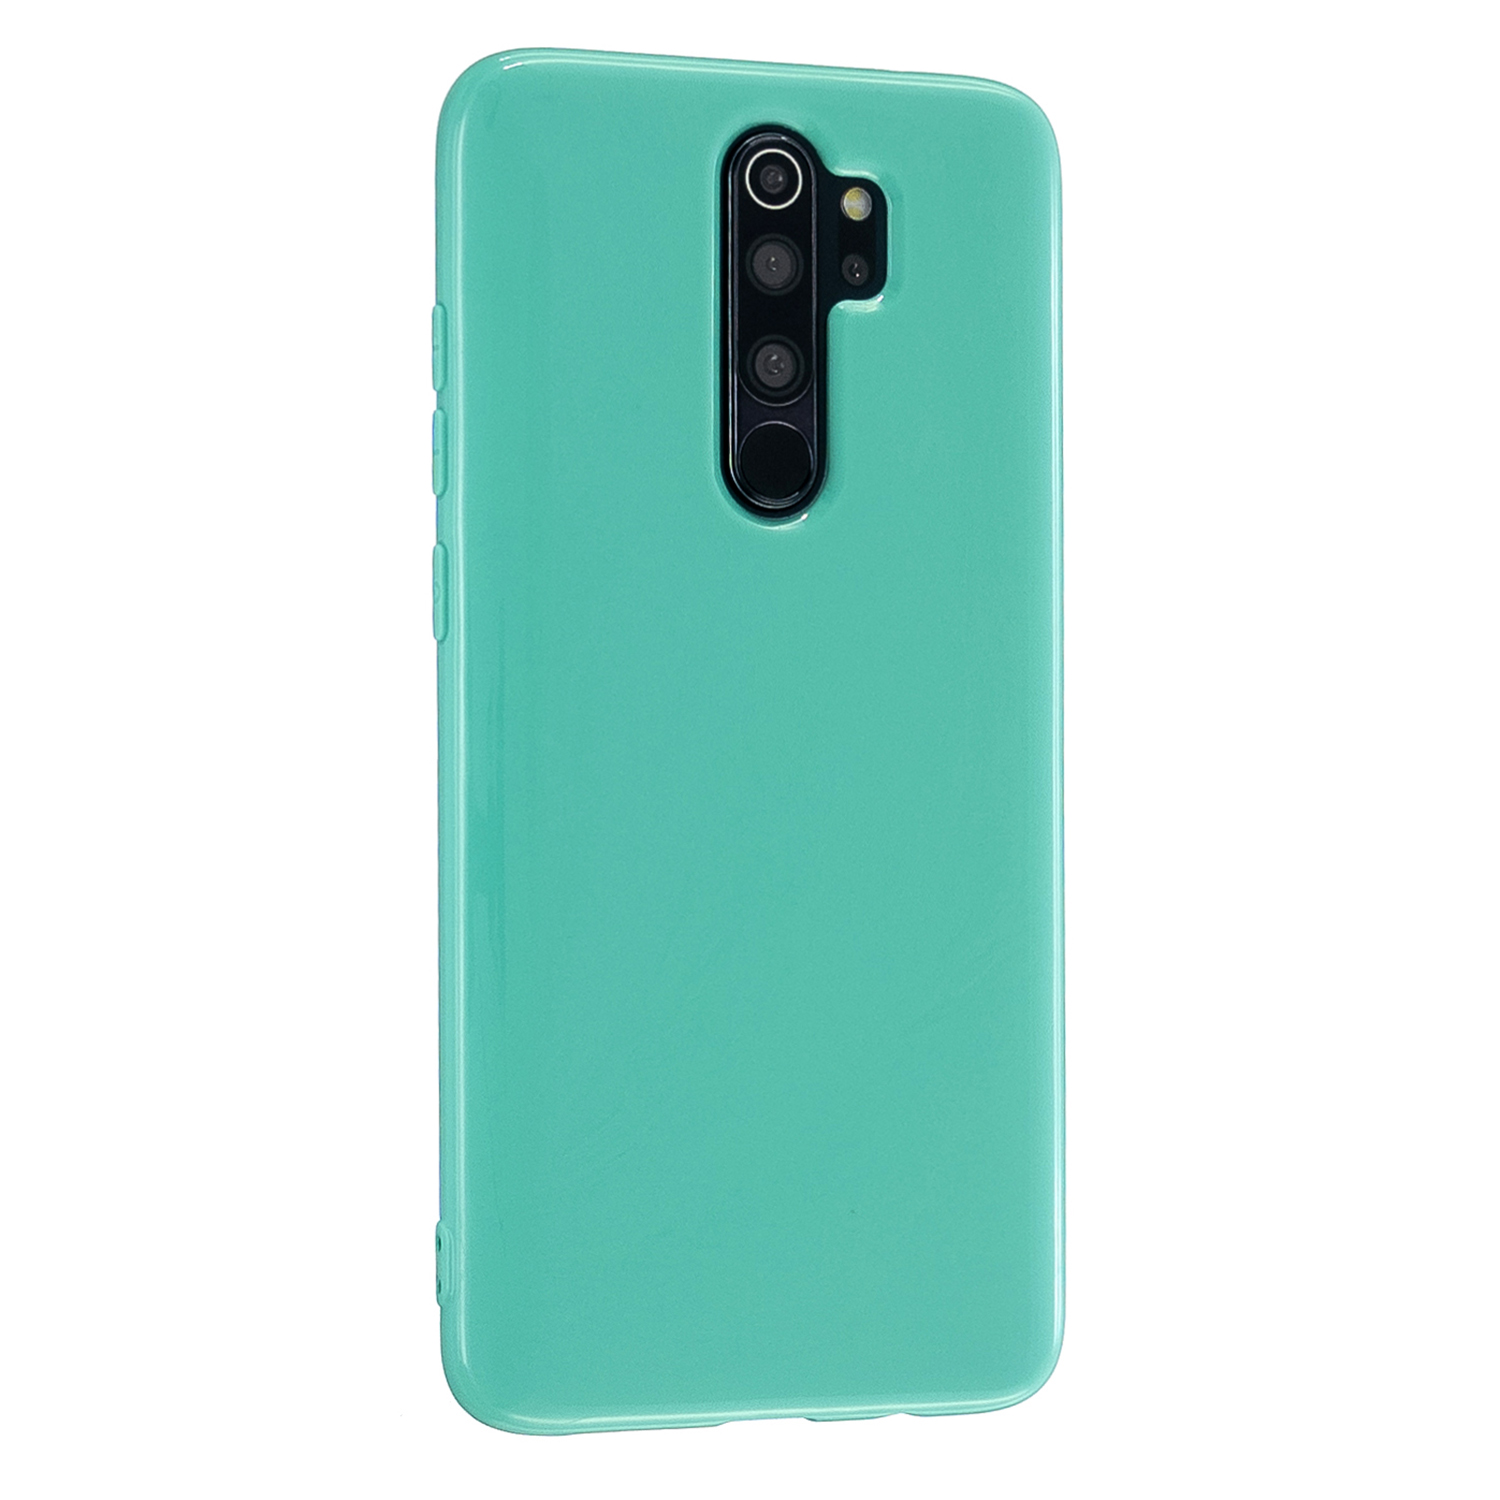 For Redmi Note 8/8 Pro Cellphone Cover 2.0mm Thickened TPU Case Camera Protector Anti-Scratch Soft Phone Shell Light blue